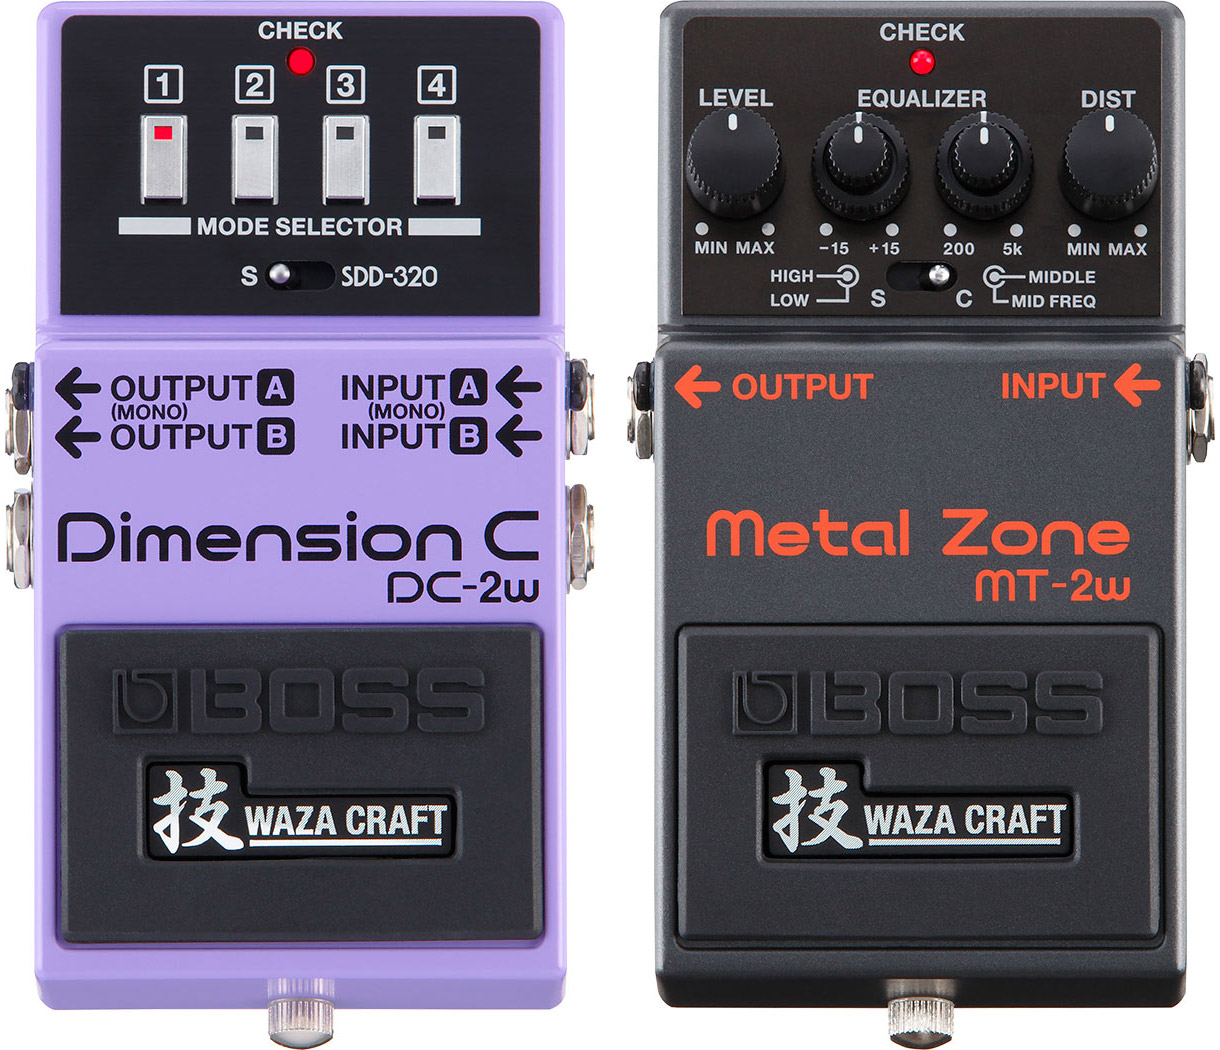 Boss DC-2W Dimension C and MT-2W Metal Zone Pedals